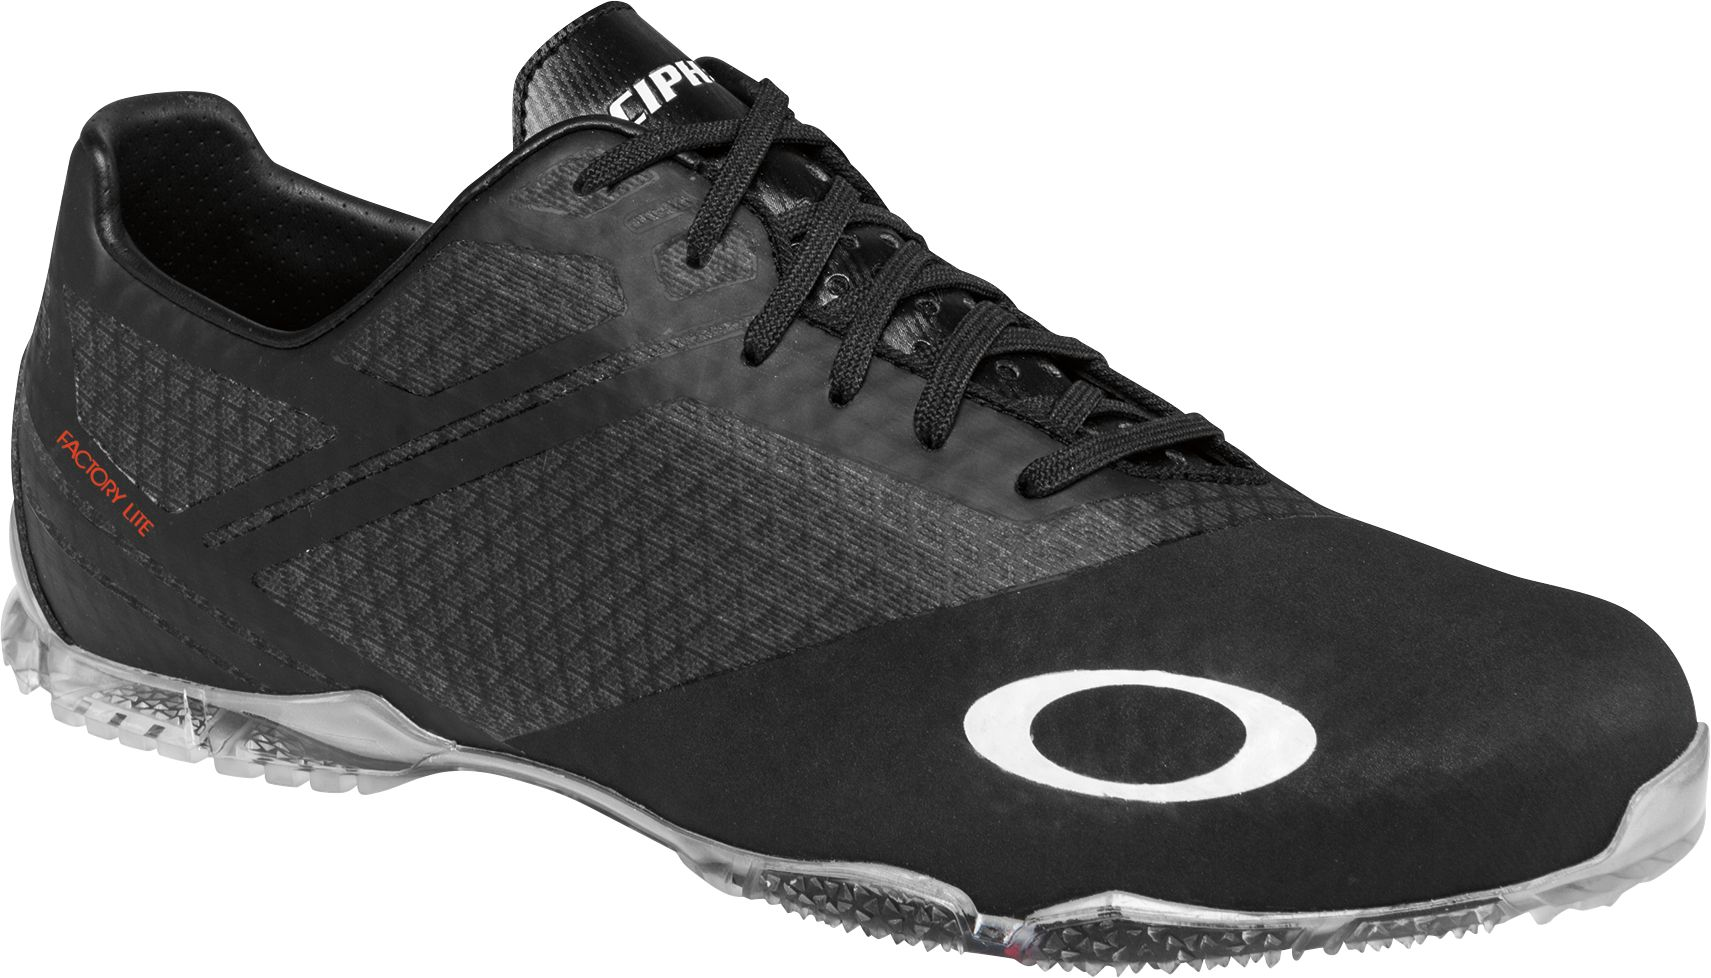 Oakley Driving Shoes For Sale